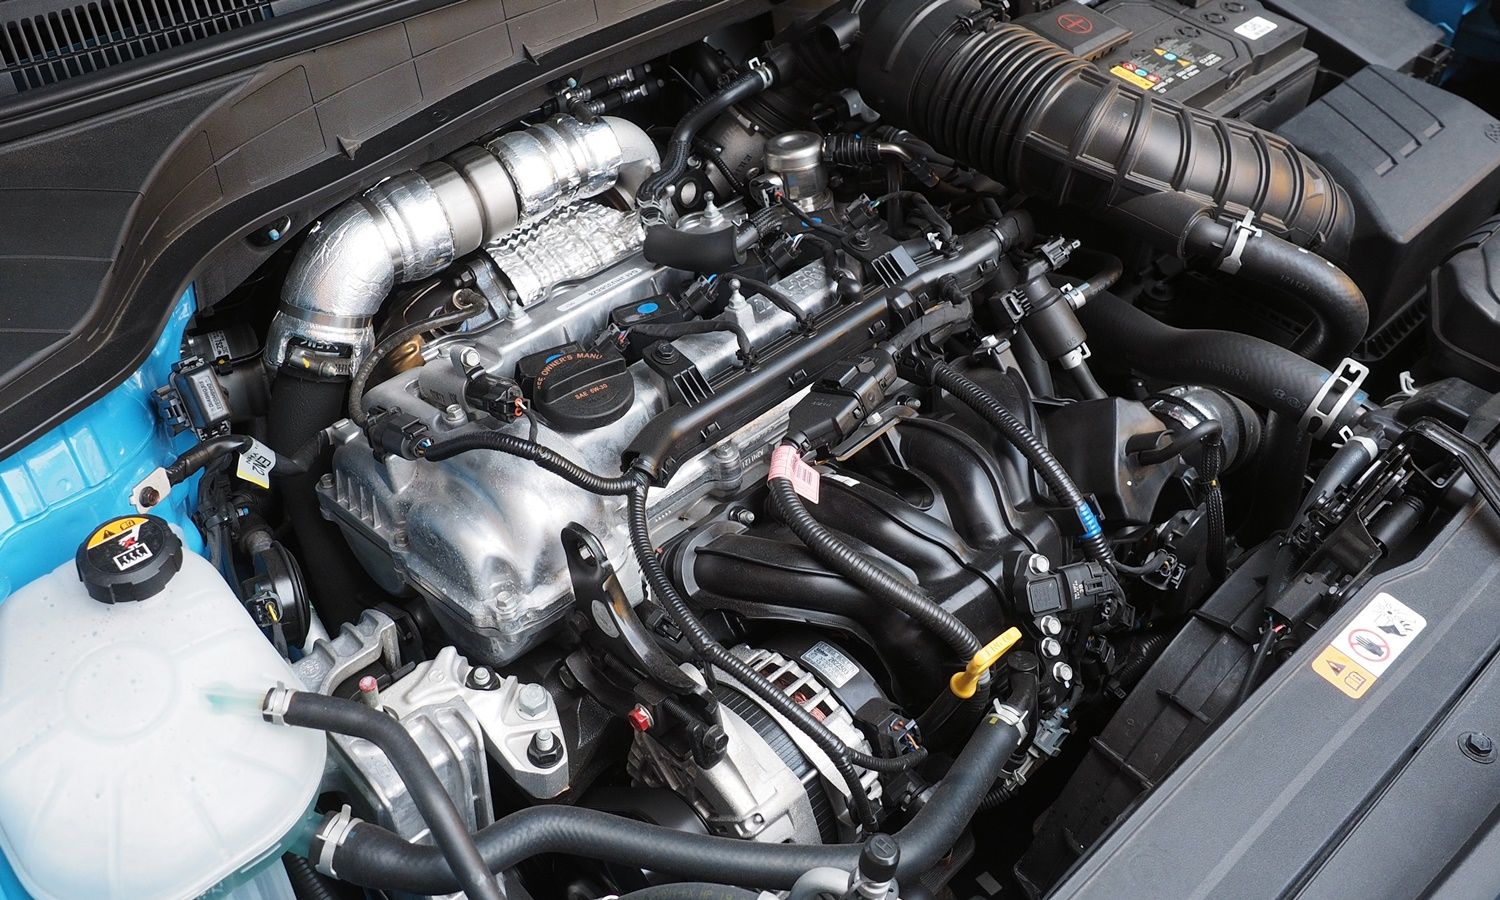 Kona Reviews: 2018 Hyundai Kona engine uncovered